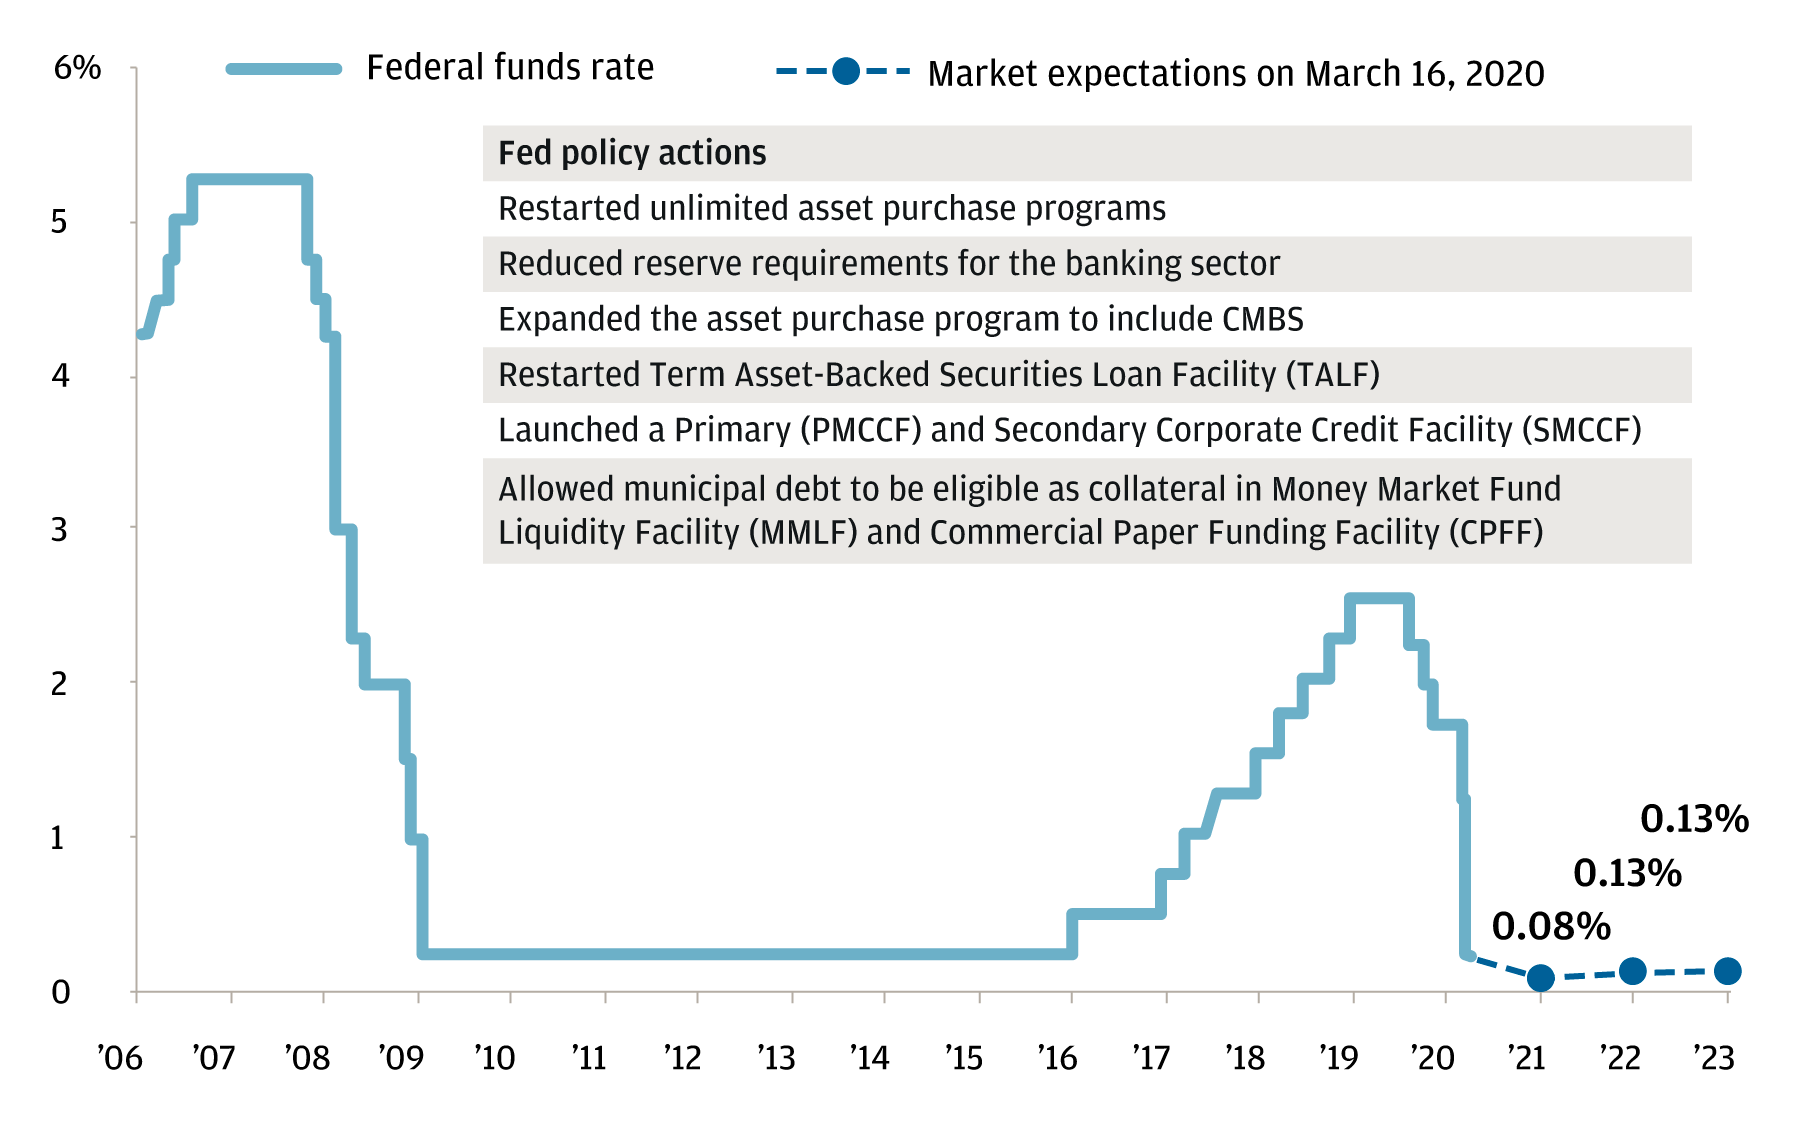 Federal Fund Rate and market expectations